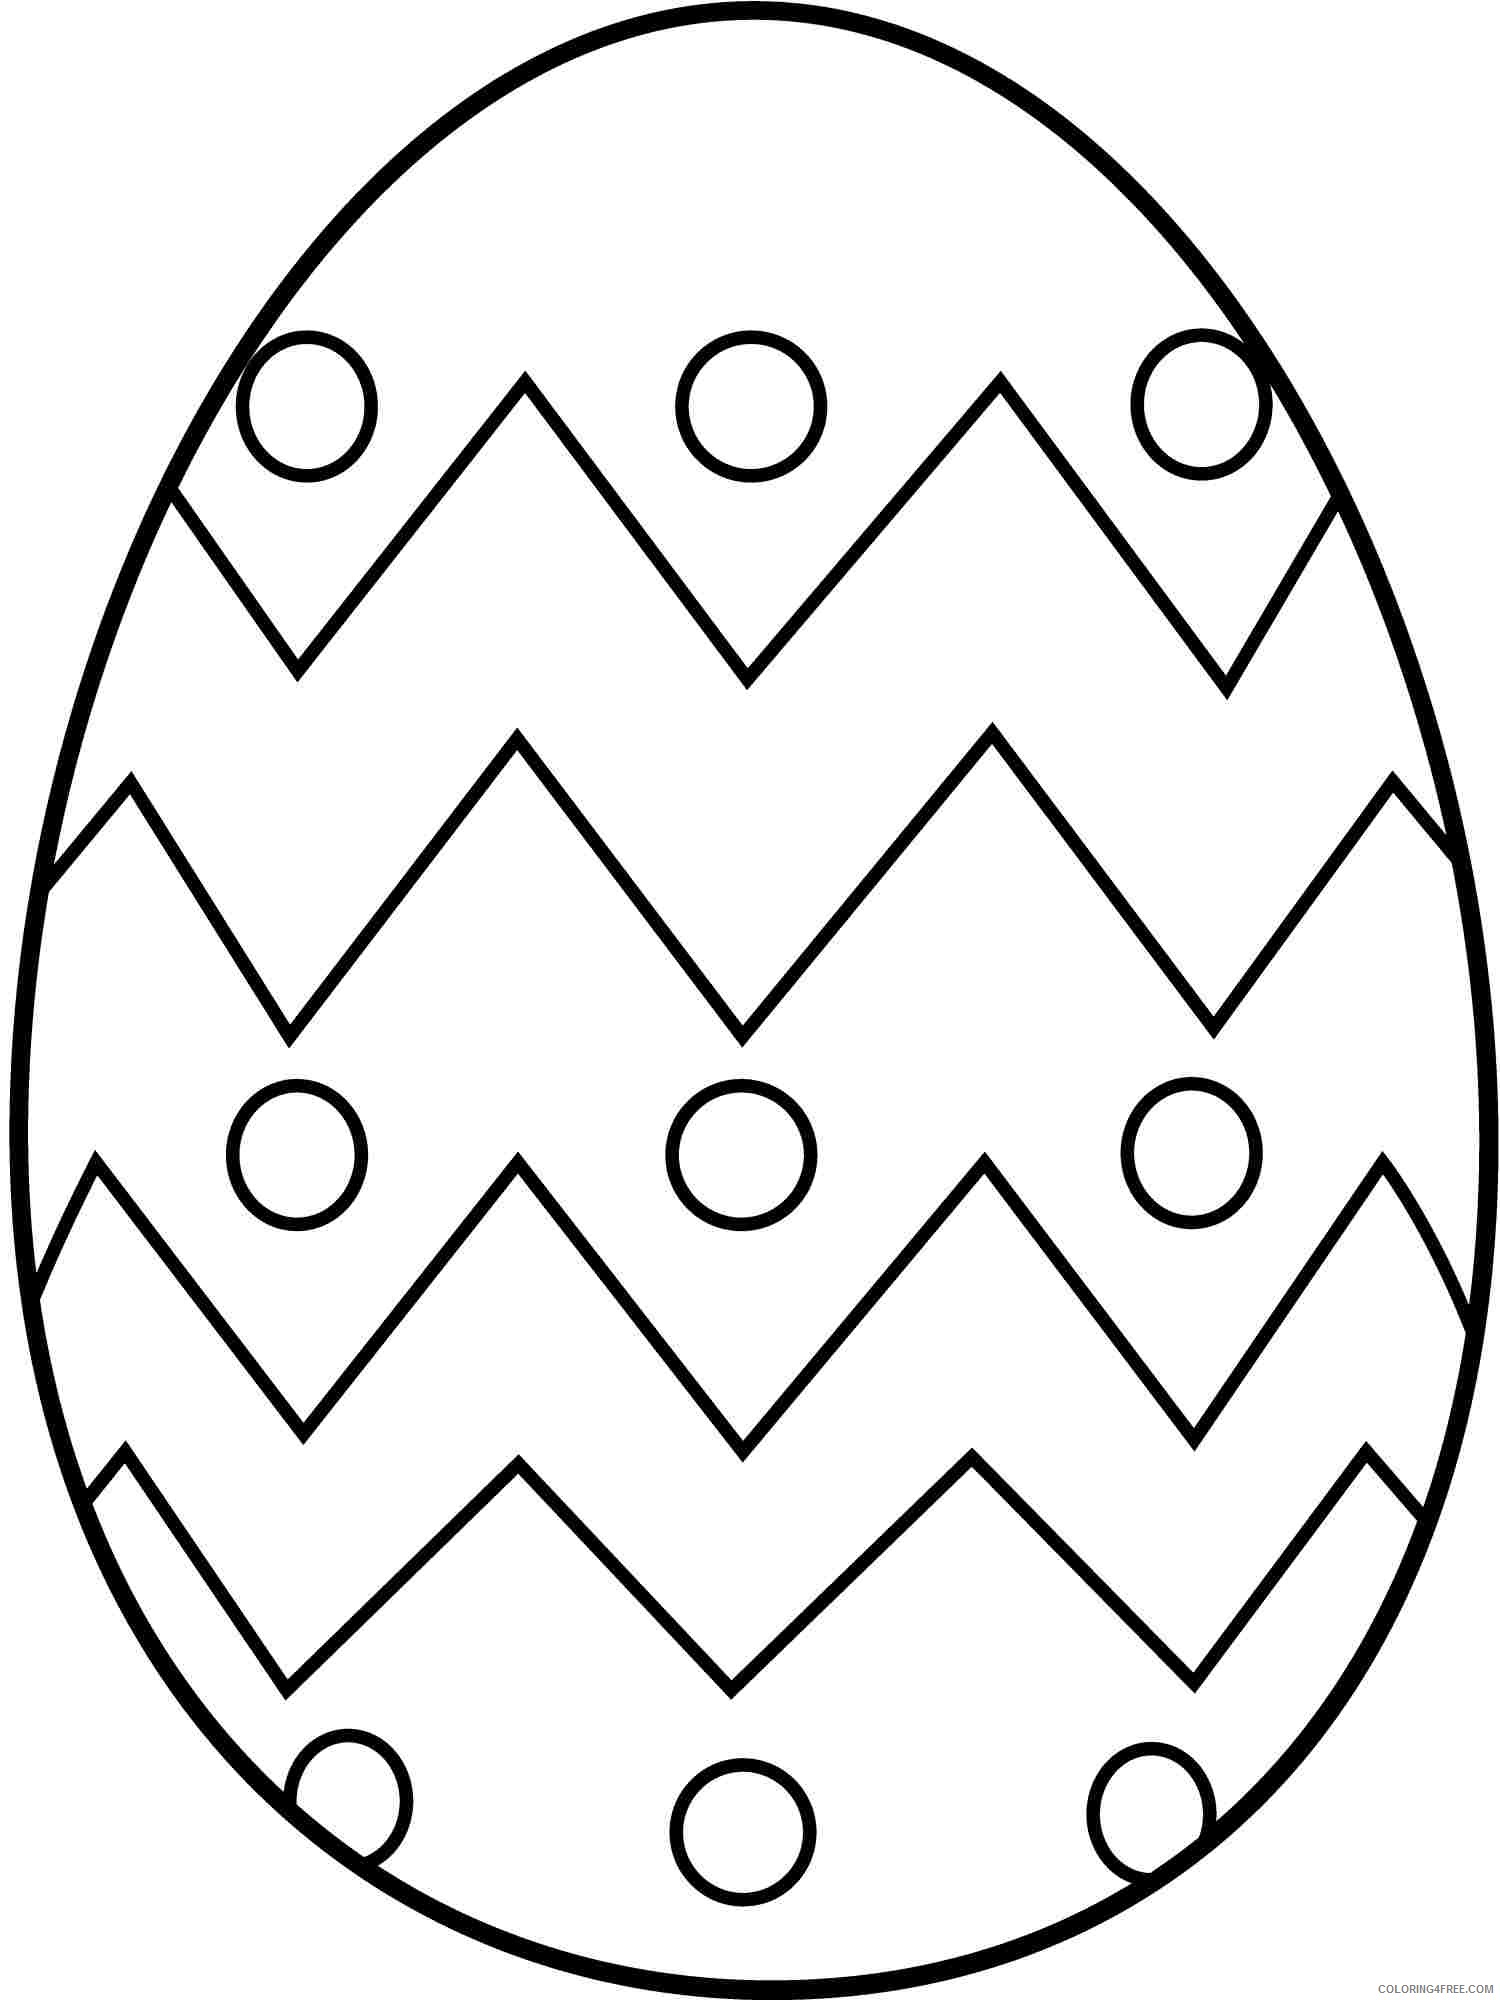 easy easter egg coloring pages Coloring4free